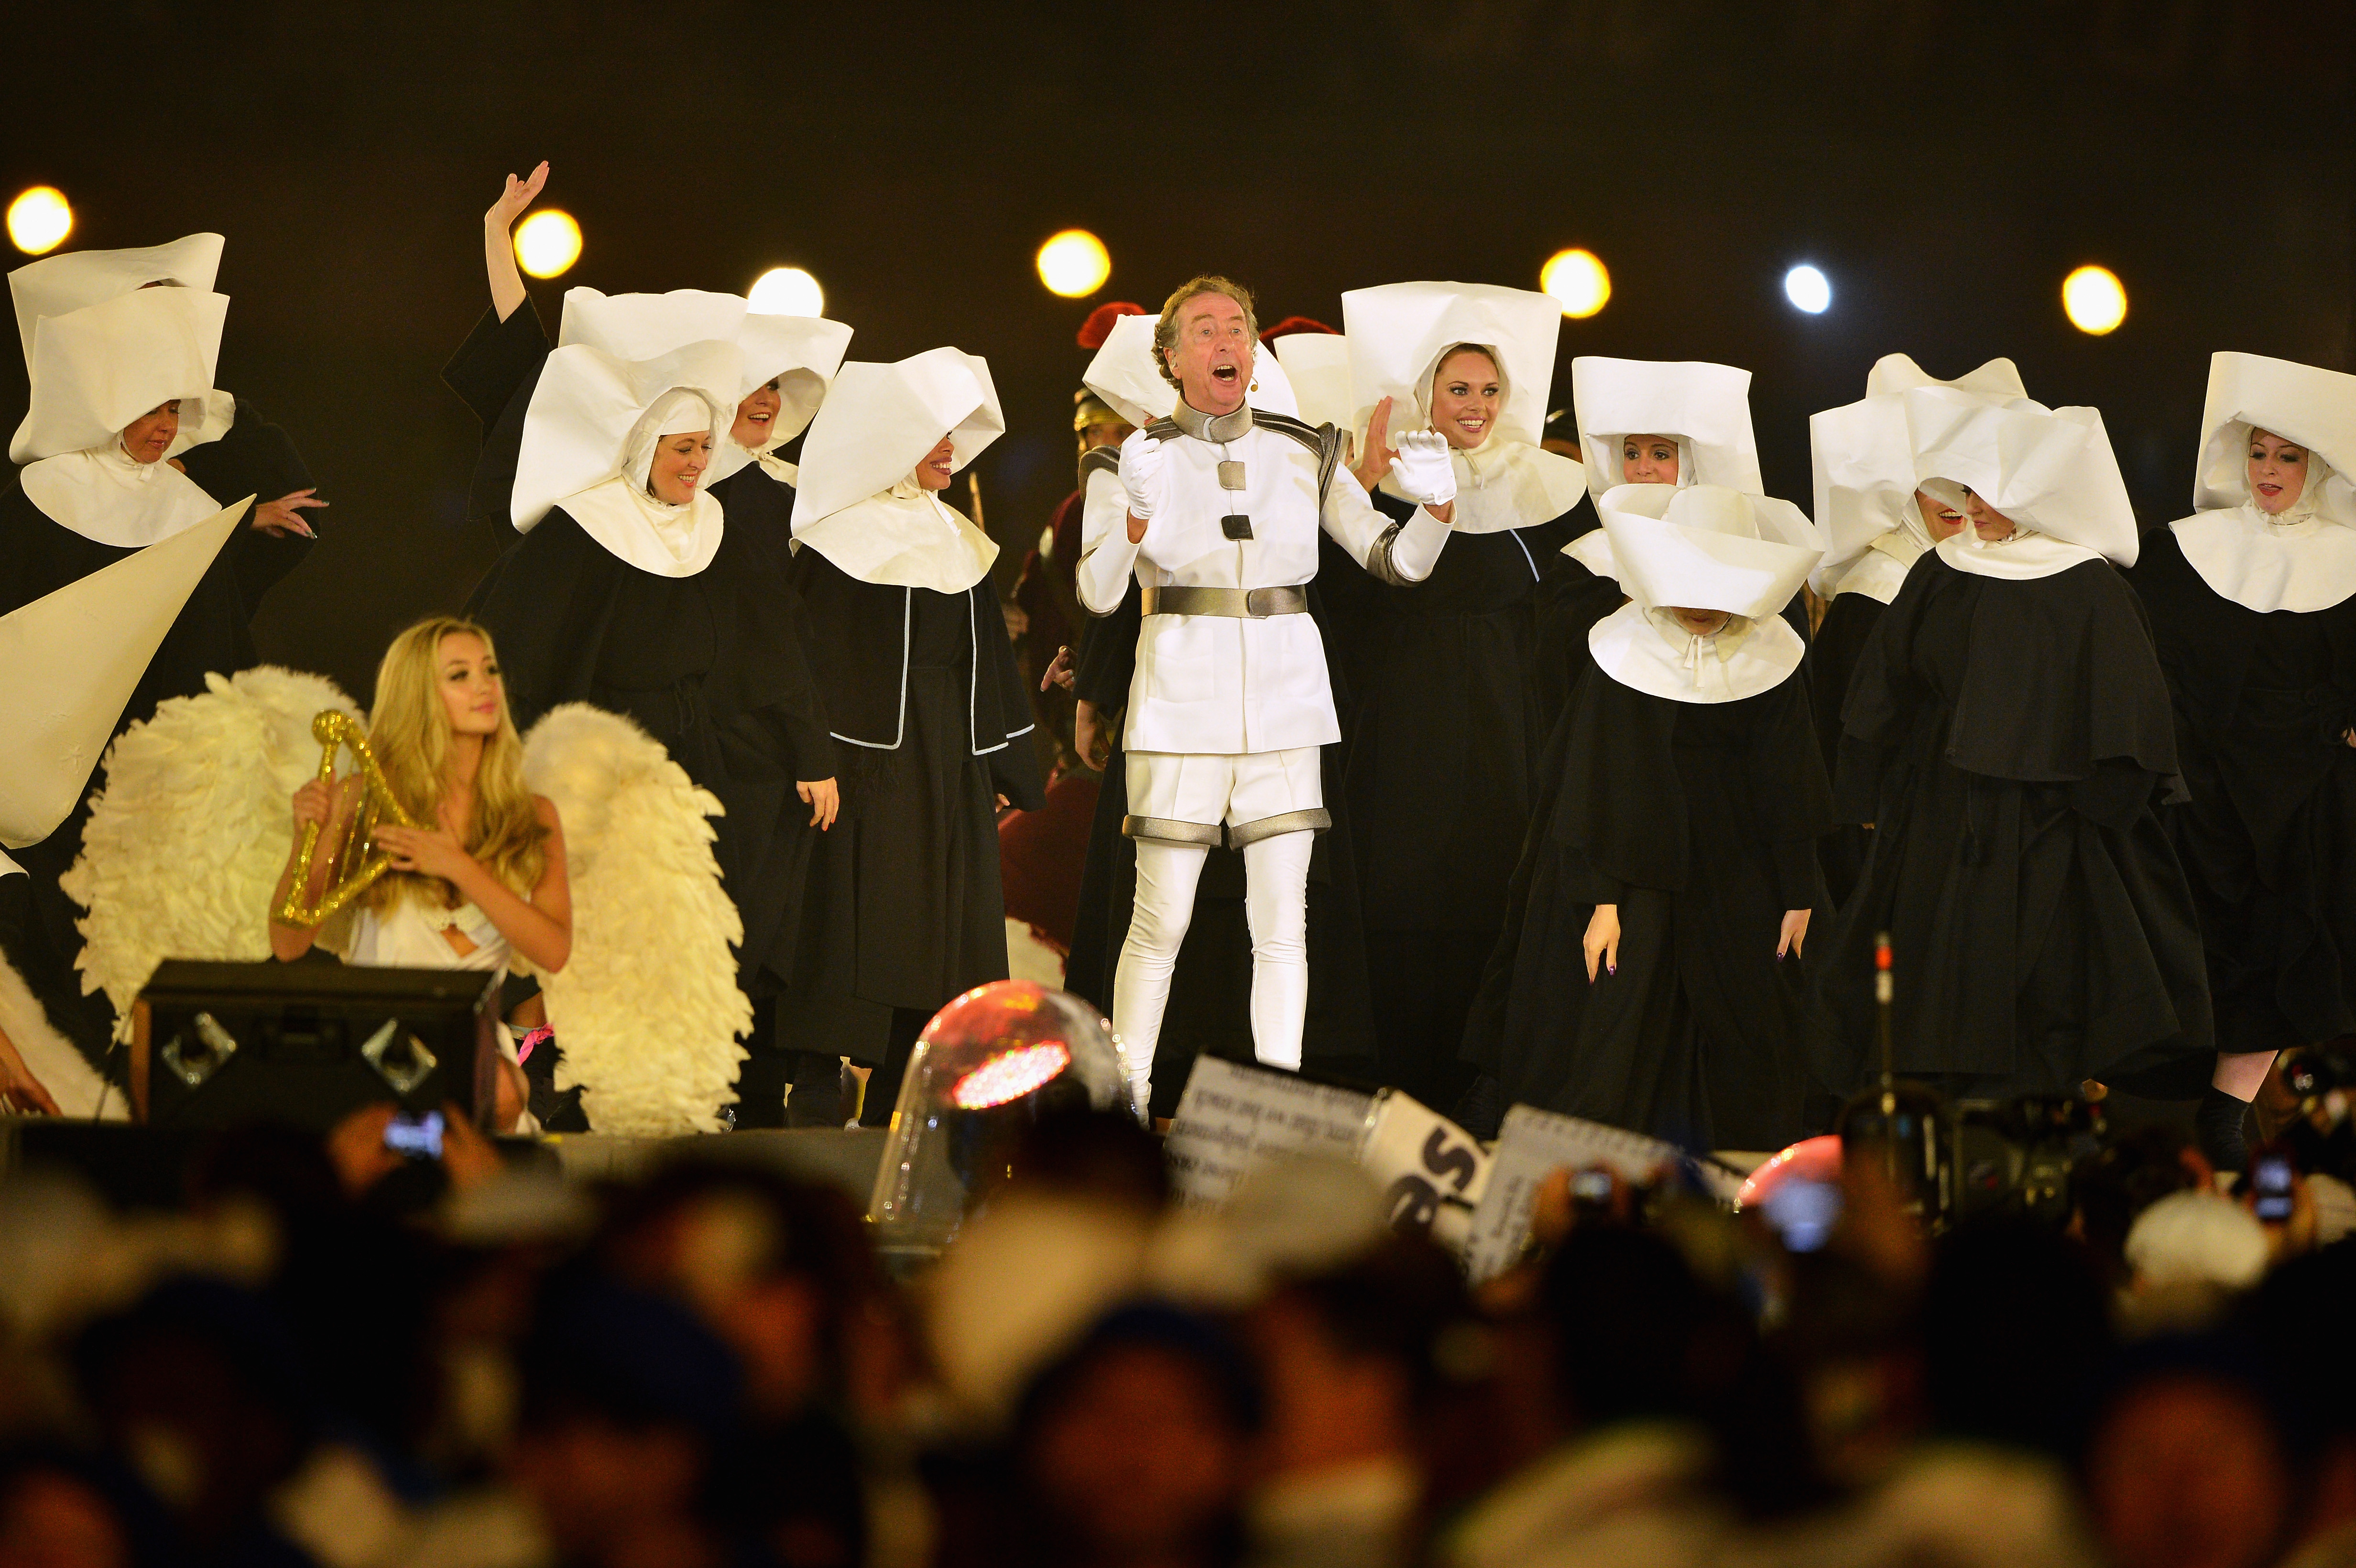 Monty Python Song Named Top Funeral Choice